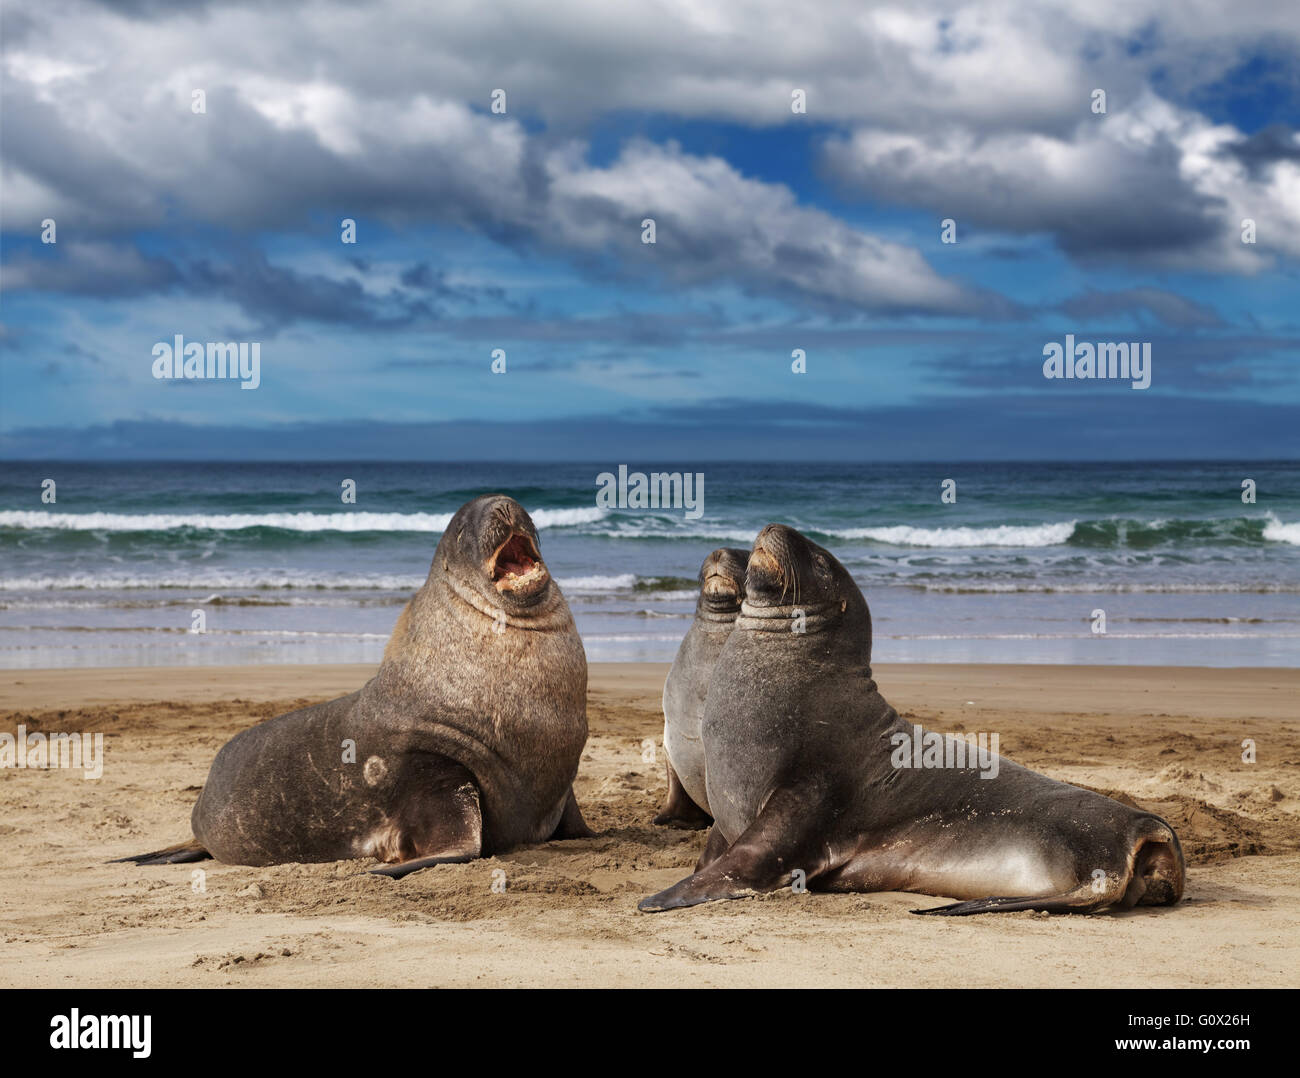 Sea lions on the beach, Cannibal Bay, New Zealand - Stock Image